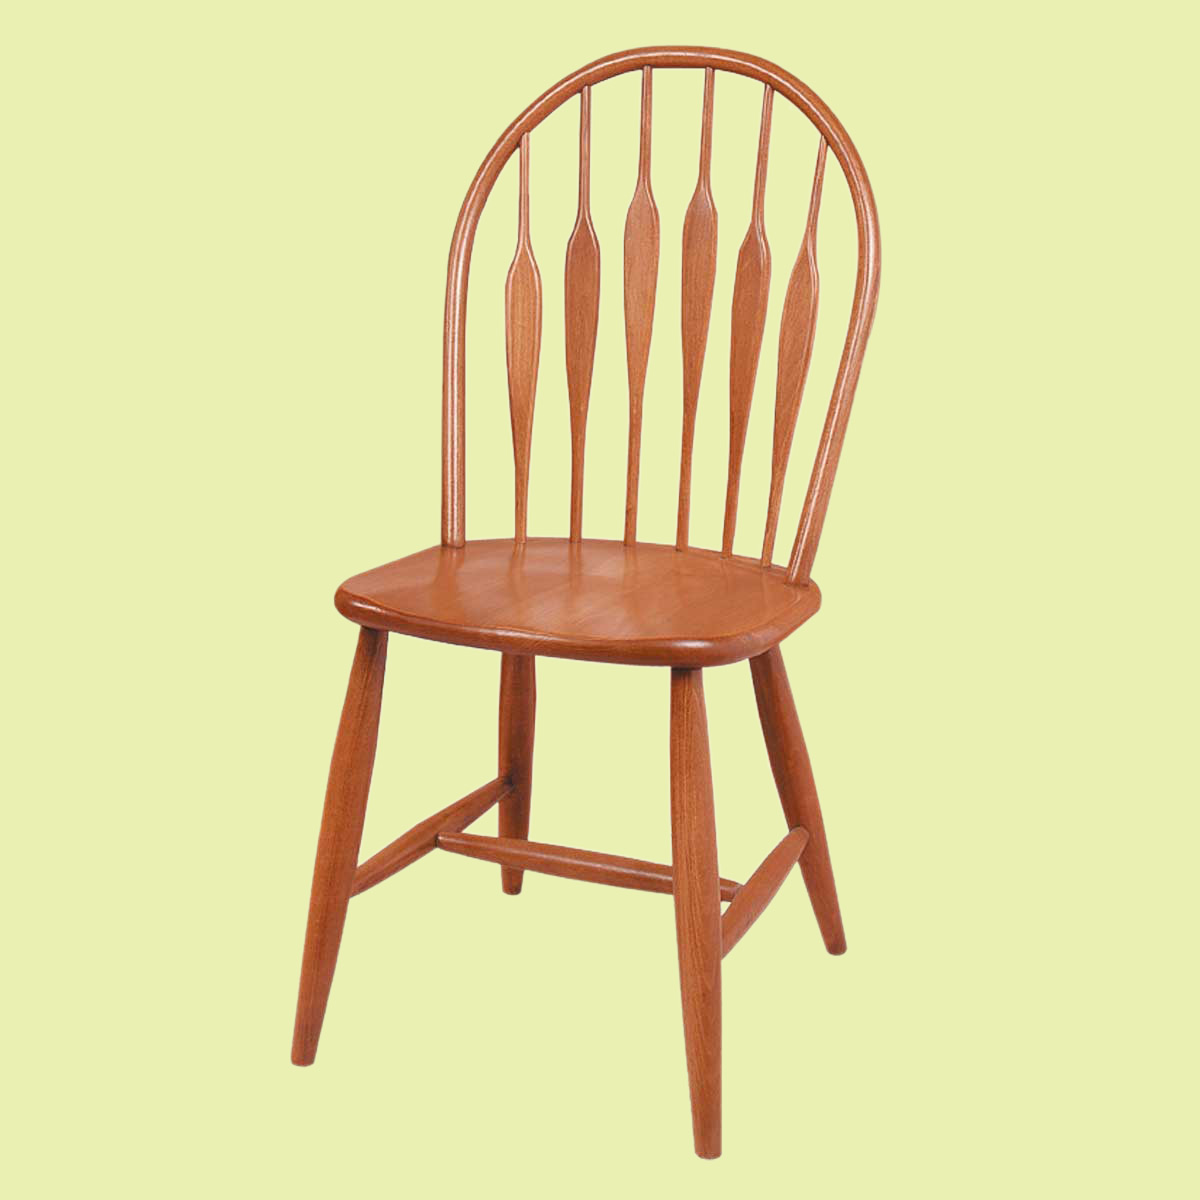 U003cPREu003eDining Chairs Heirloom Beechwood Arrowback 38.5inchH ...